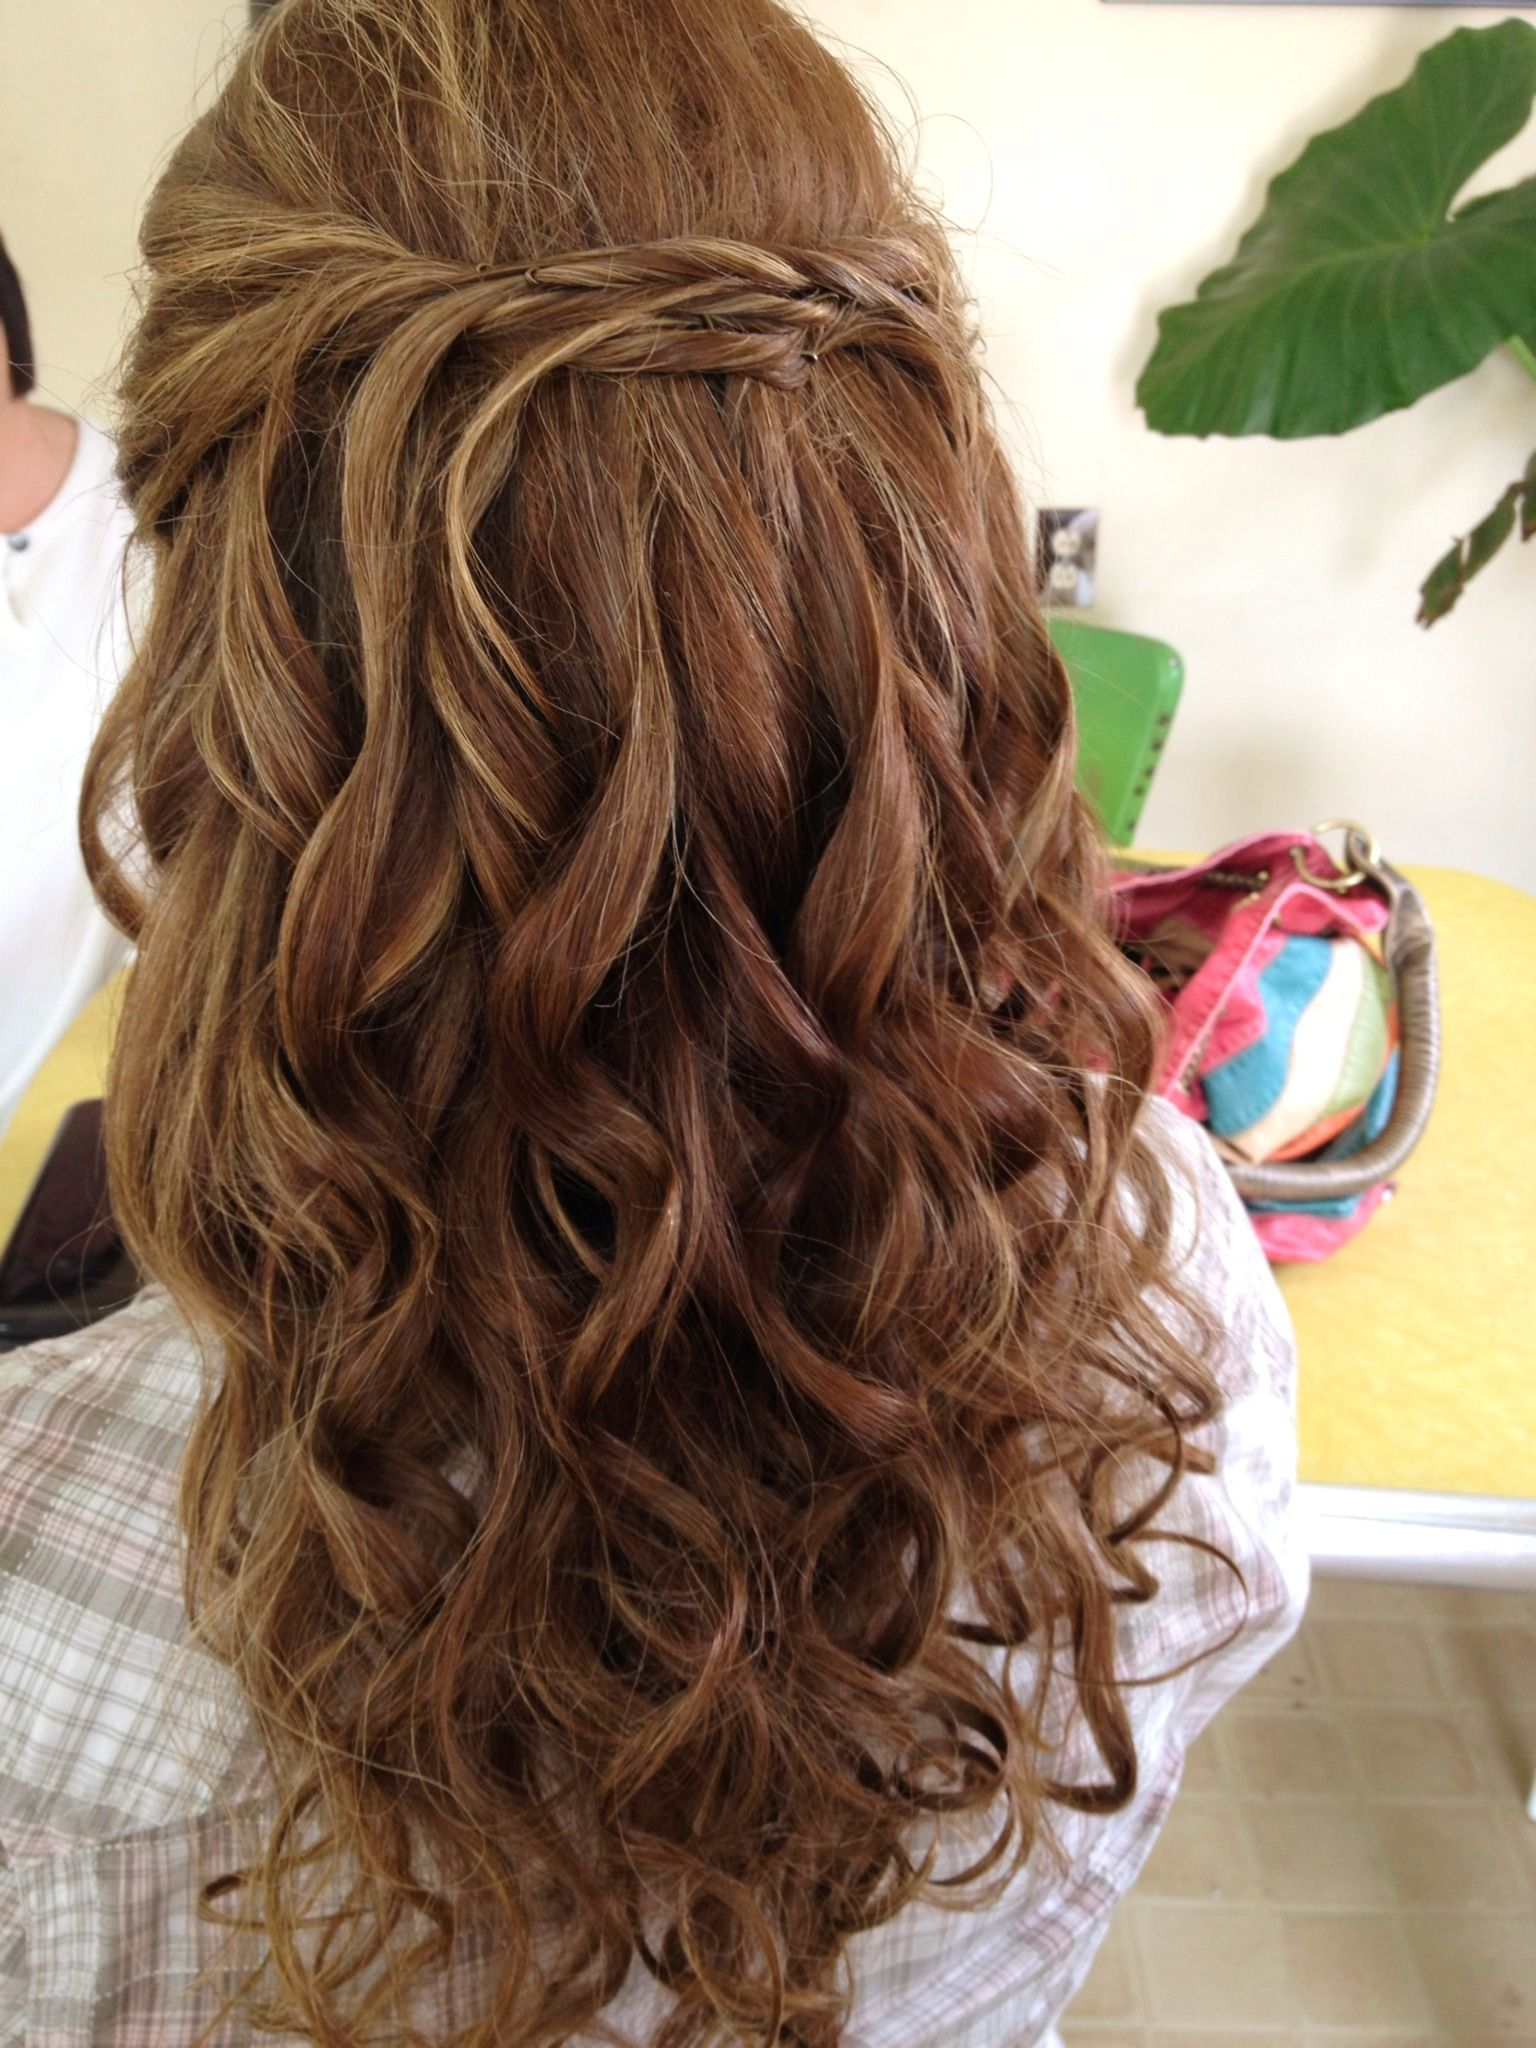 Pin By Brittney Schappaugh On Bridal Hair Ideas Bridesmaid Hair Half Up Hair Pagent Hair